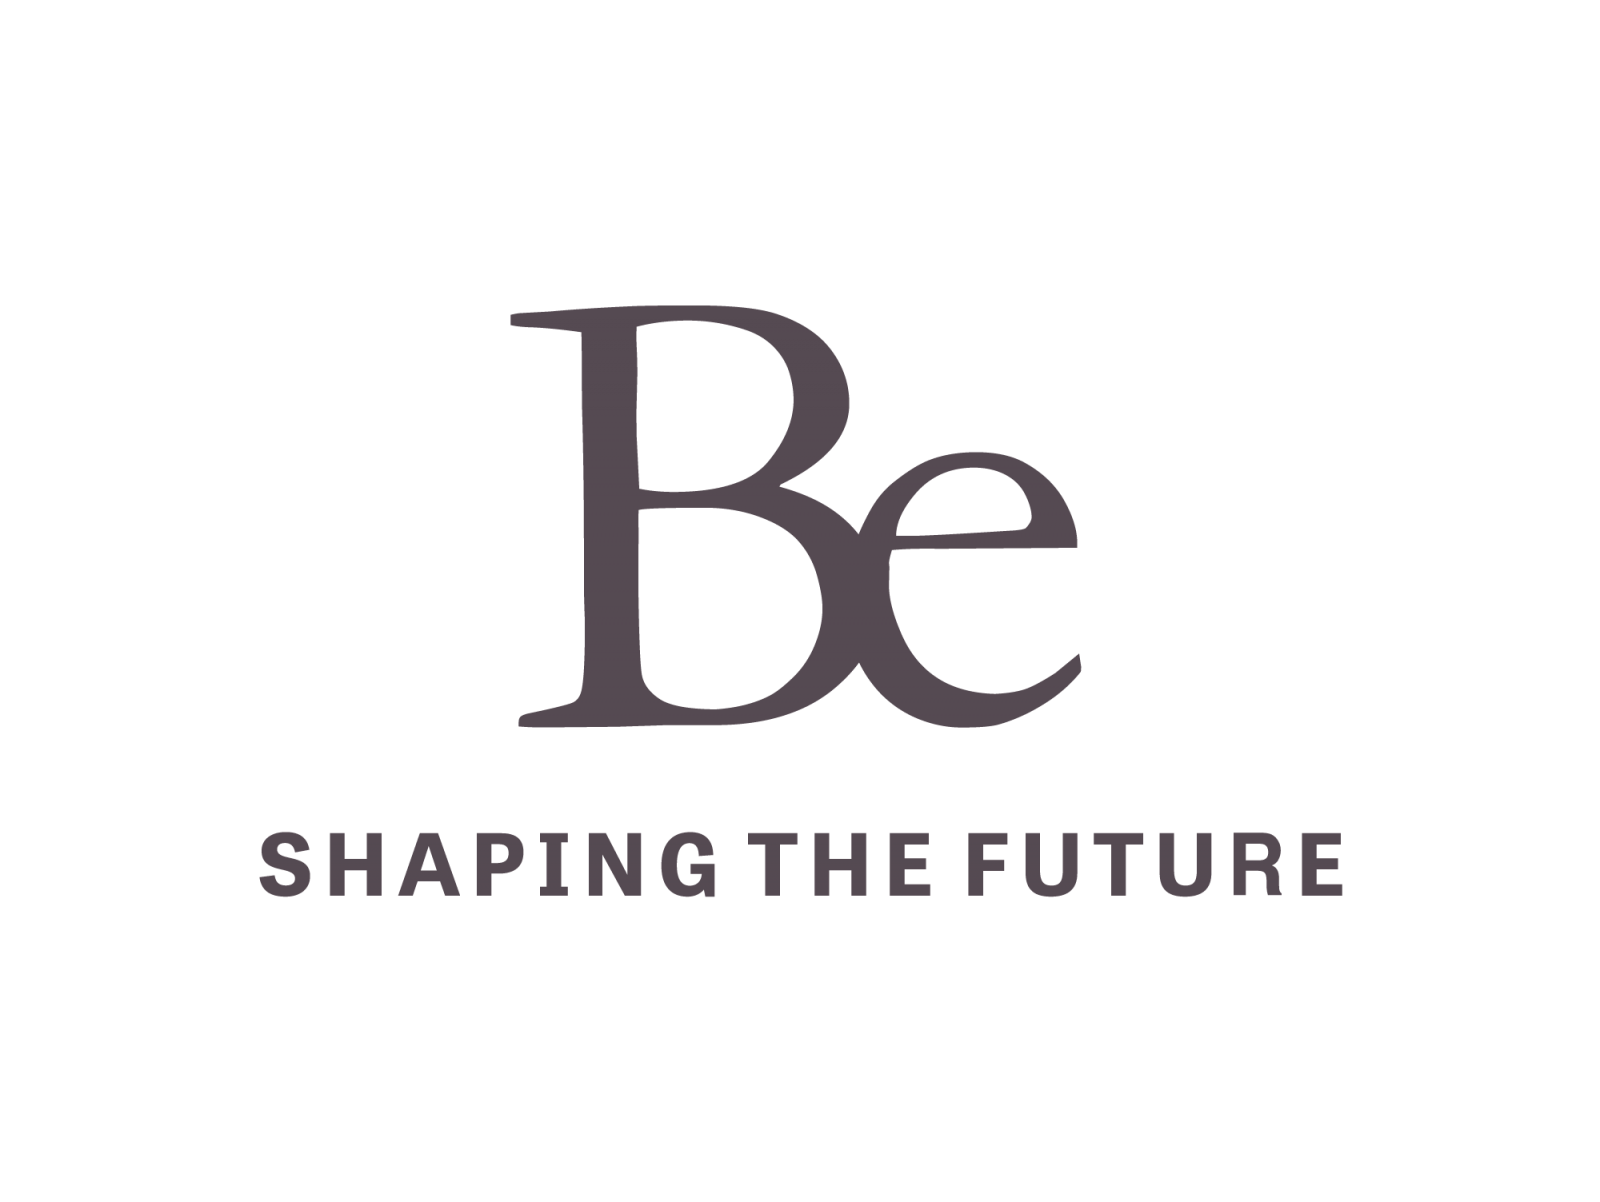 Logo BE SHAPING THE FUTURE, MANAGEMENT CONSULTING S.P.A.